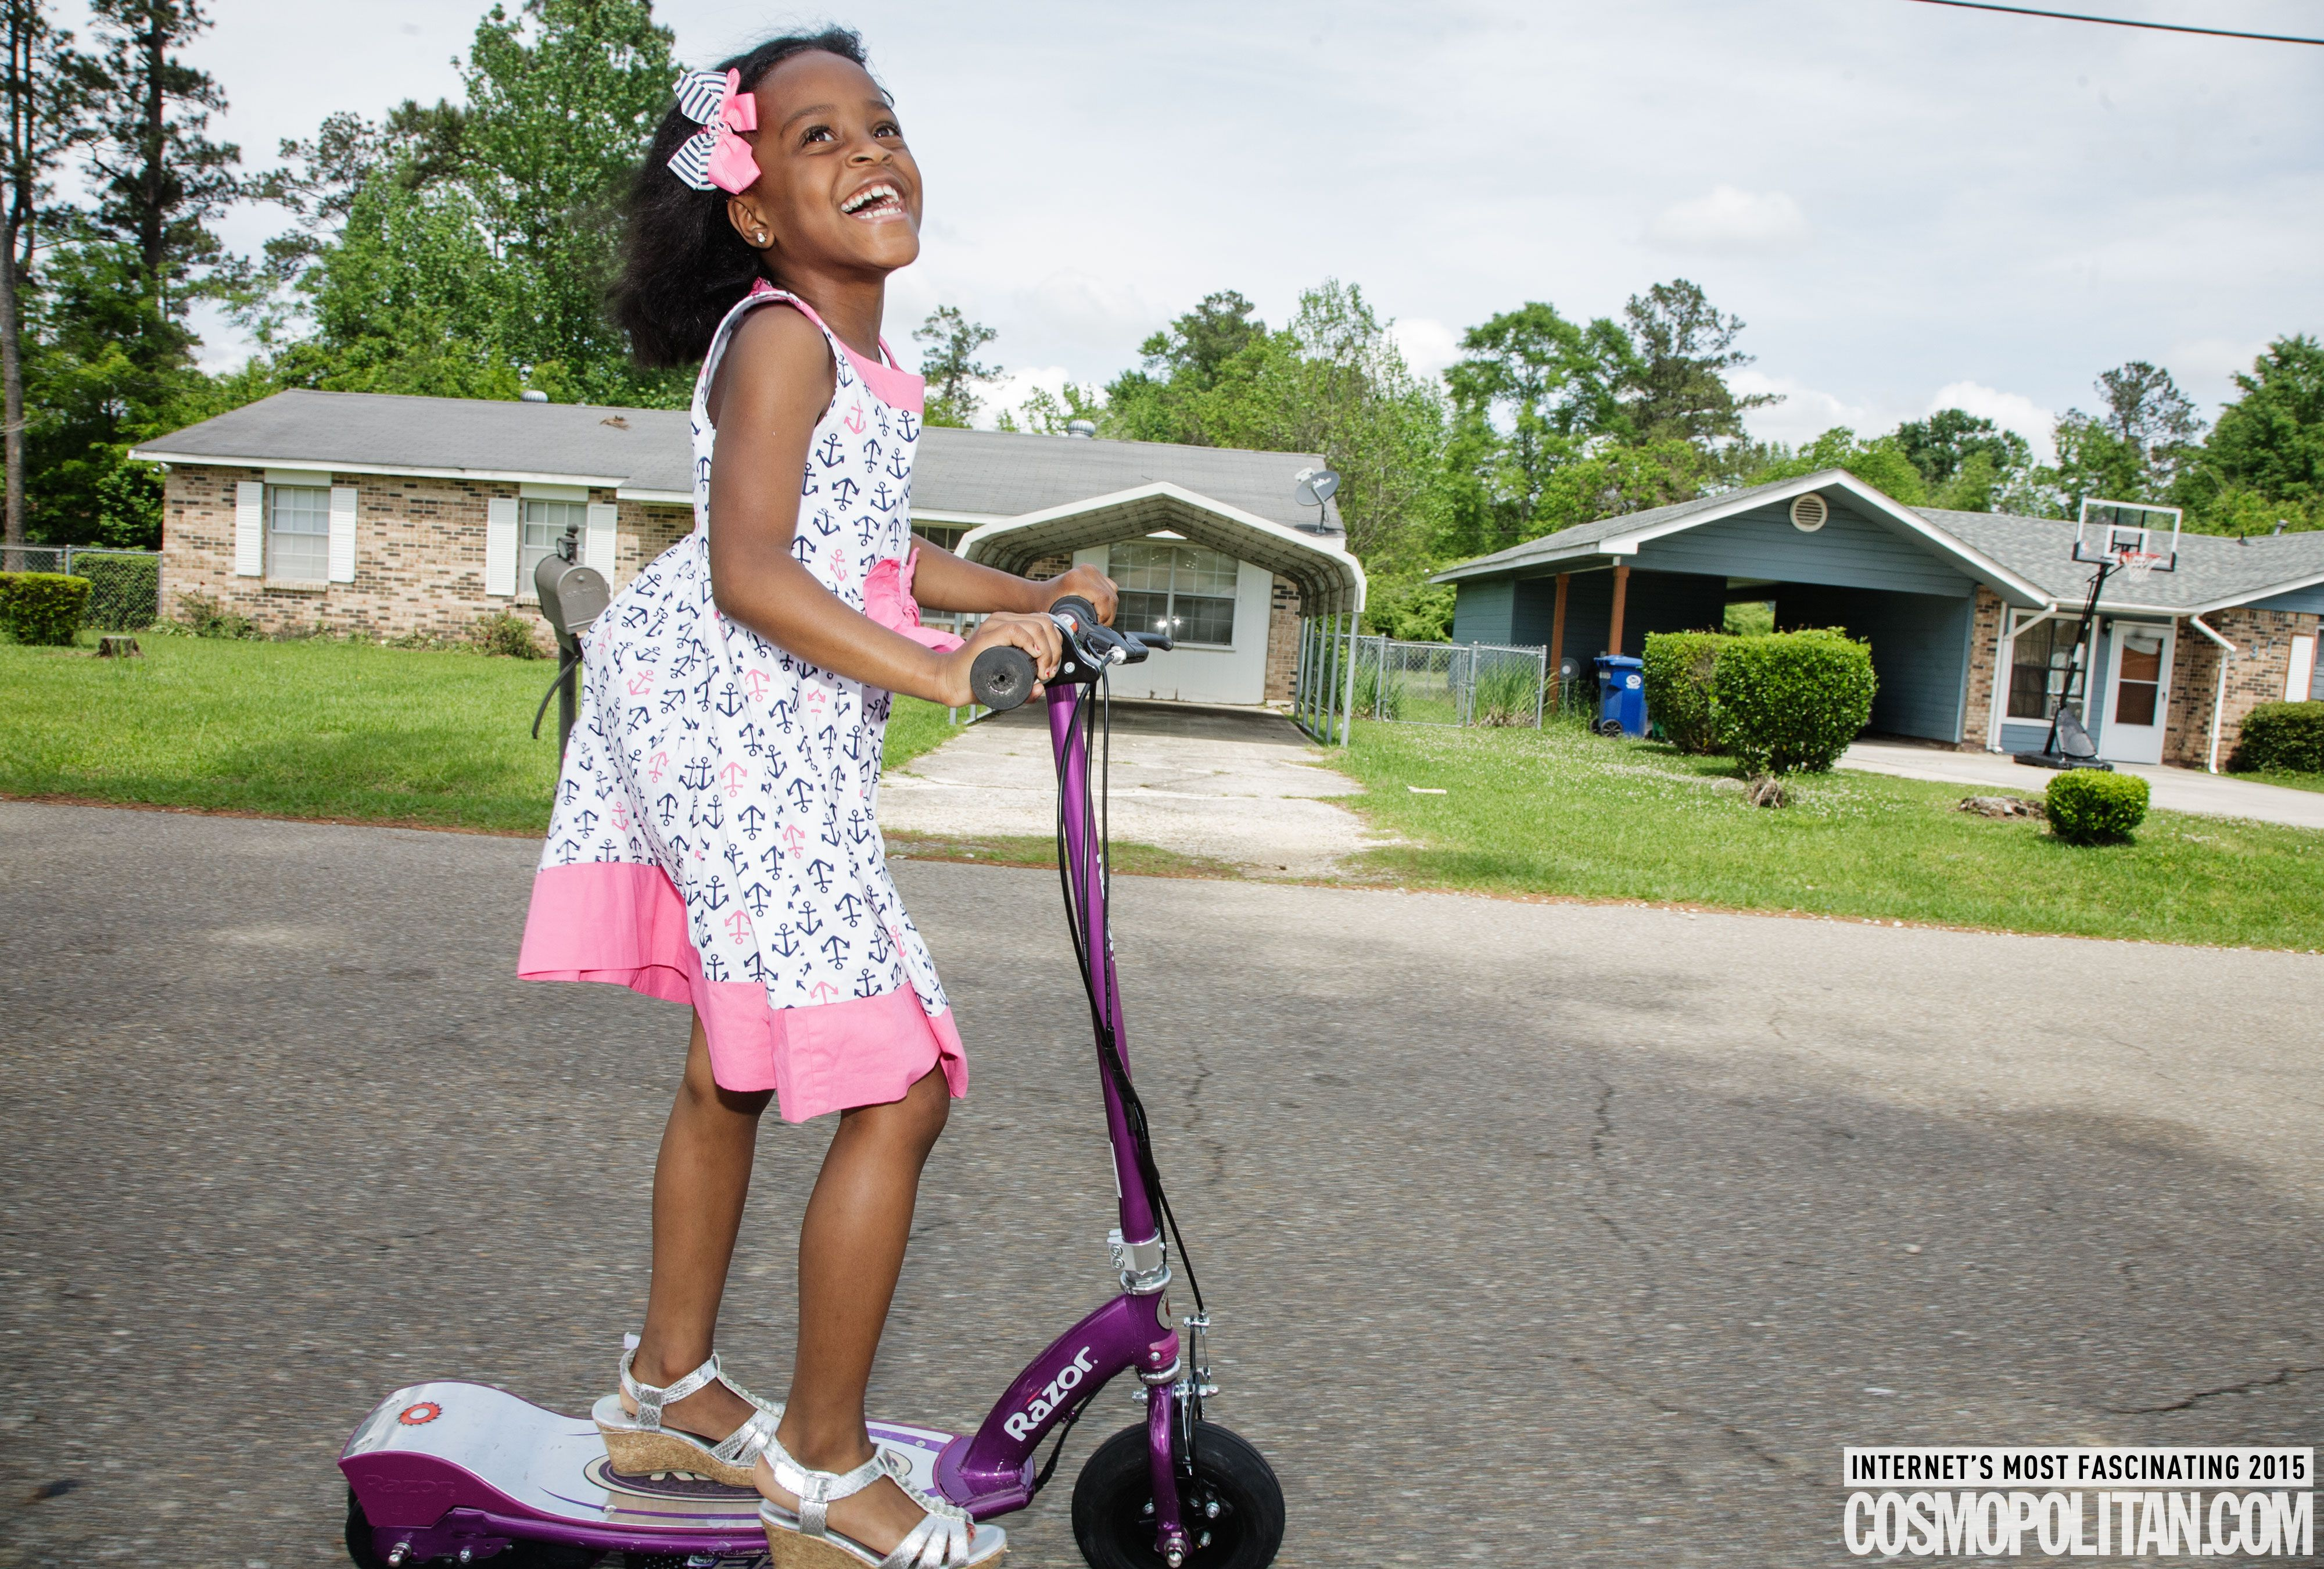 6-Year-Old Cece Price Is a Famous Internet Comedian, but Her Mom Wont Rest Until Shes on TV